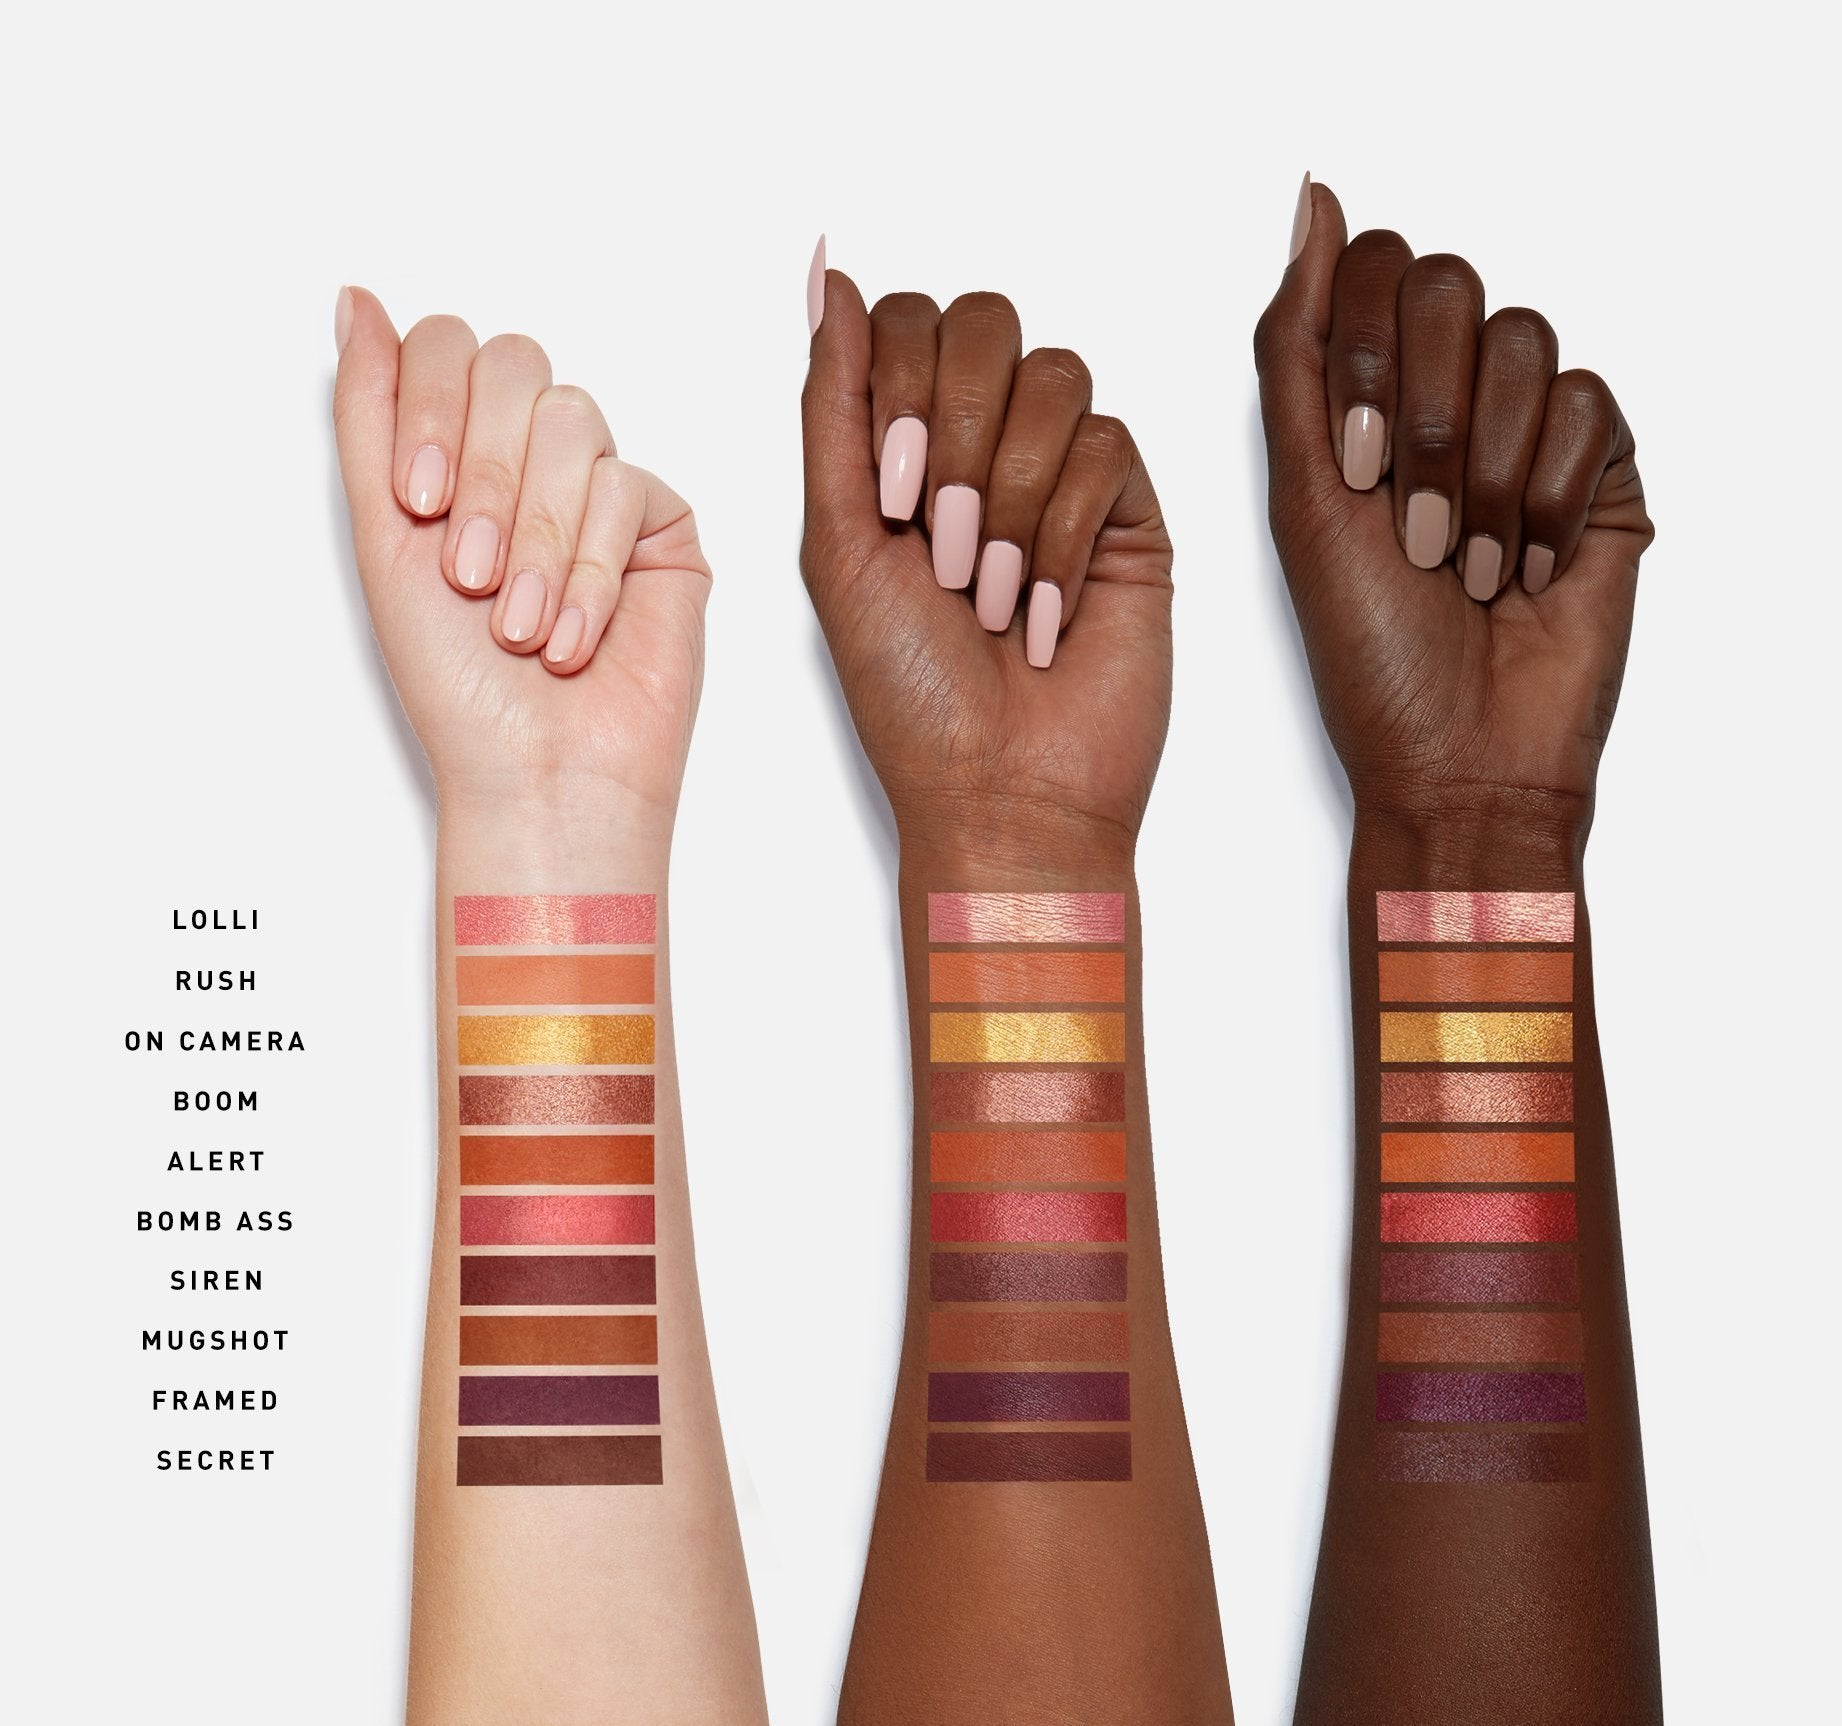 RING THE ALARM EYESHADOW PALETTE ARM SWATCHES, view larger image